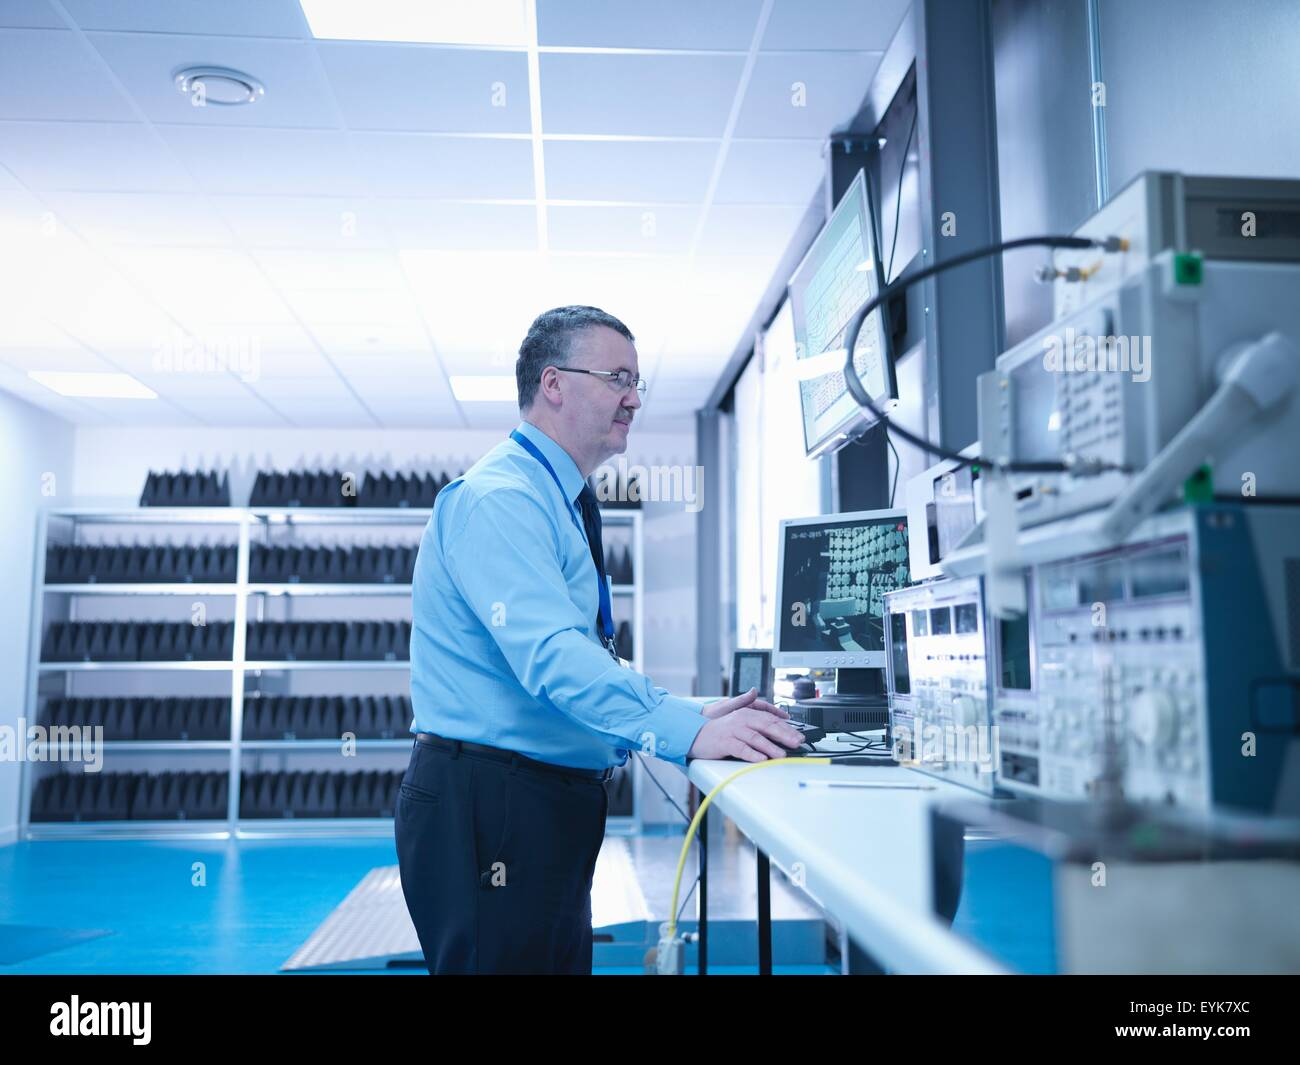 Electromagnetic compatibility engineer carrying out radiated emissions scan on electrical equipment in anechoic - Stock Image